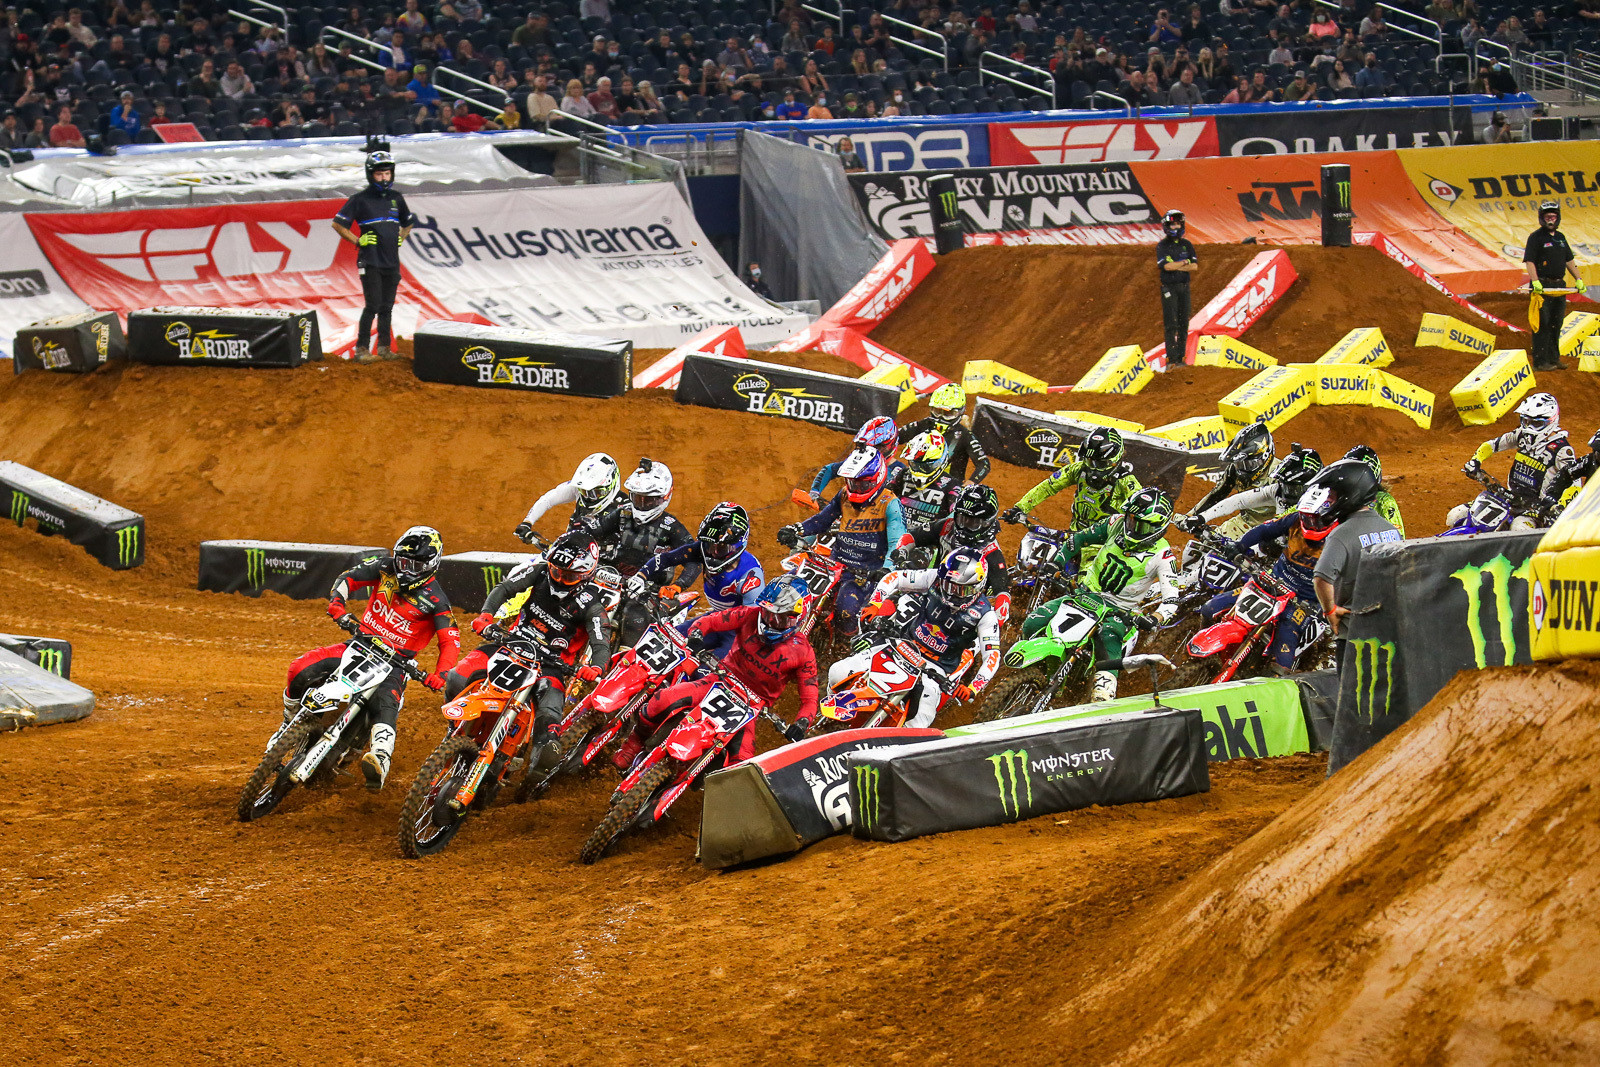 The start of the 450 main (above and below).